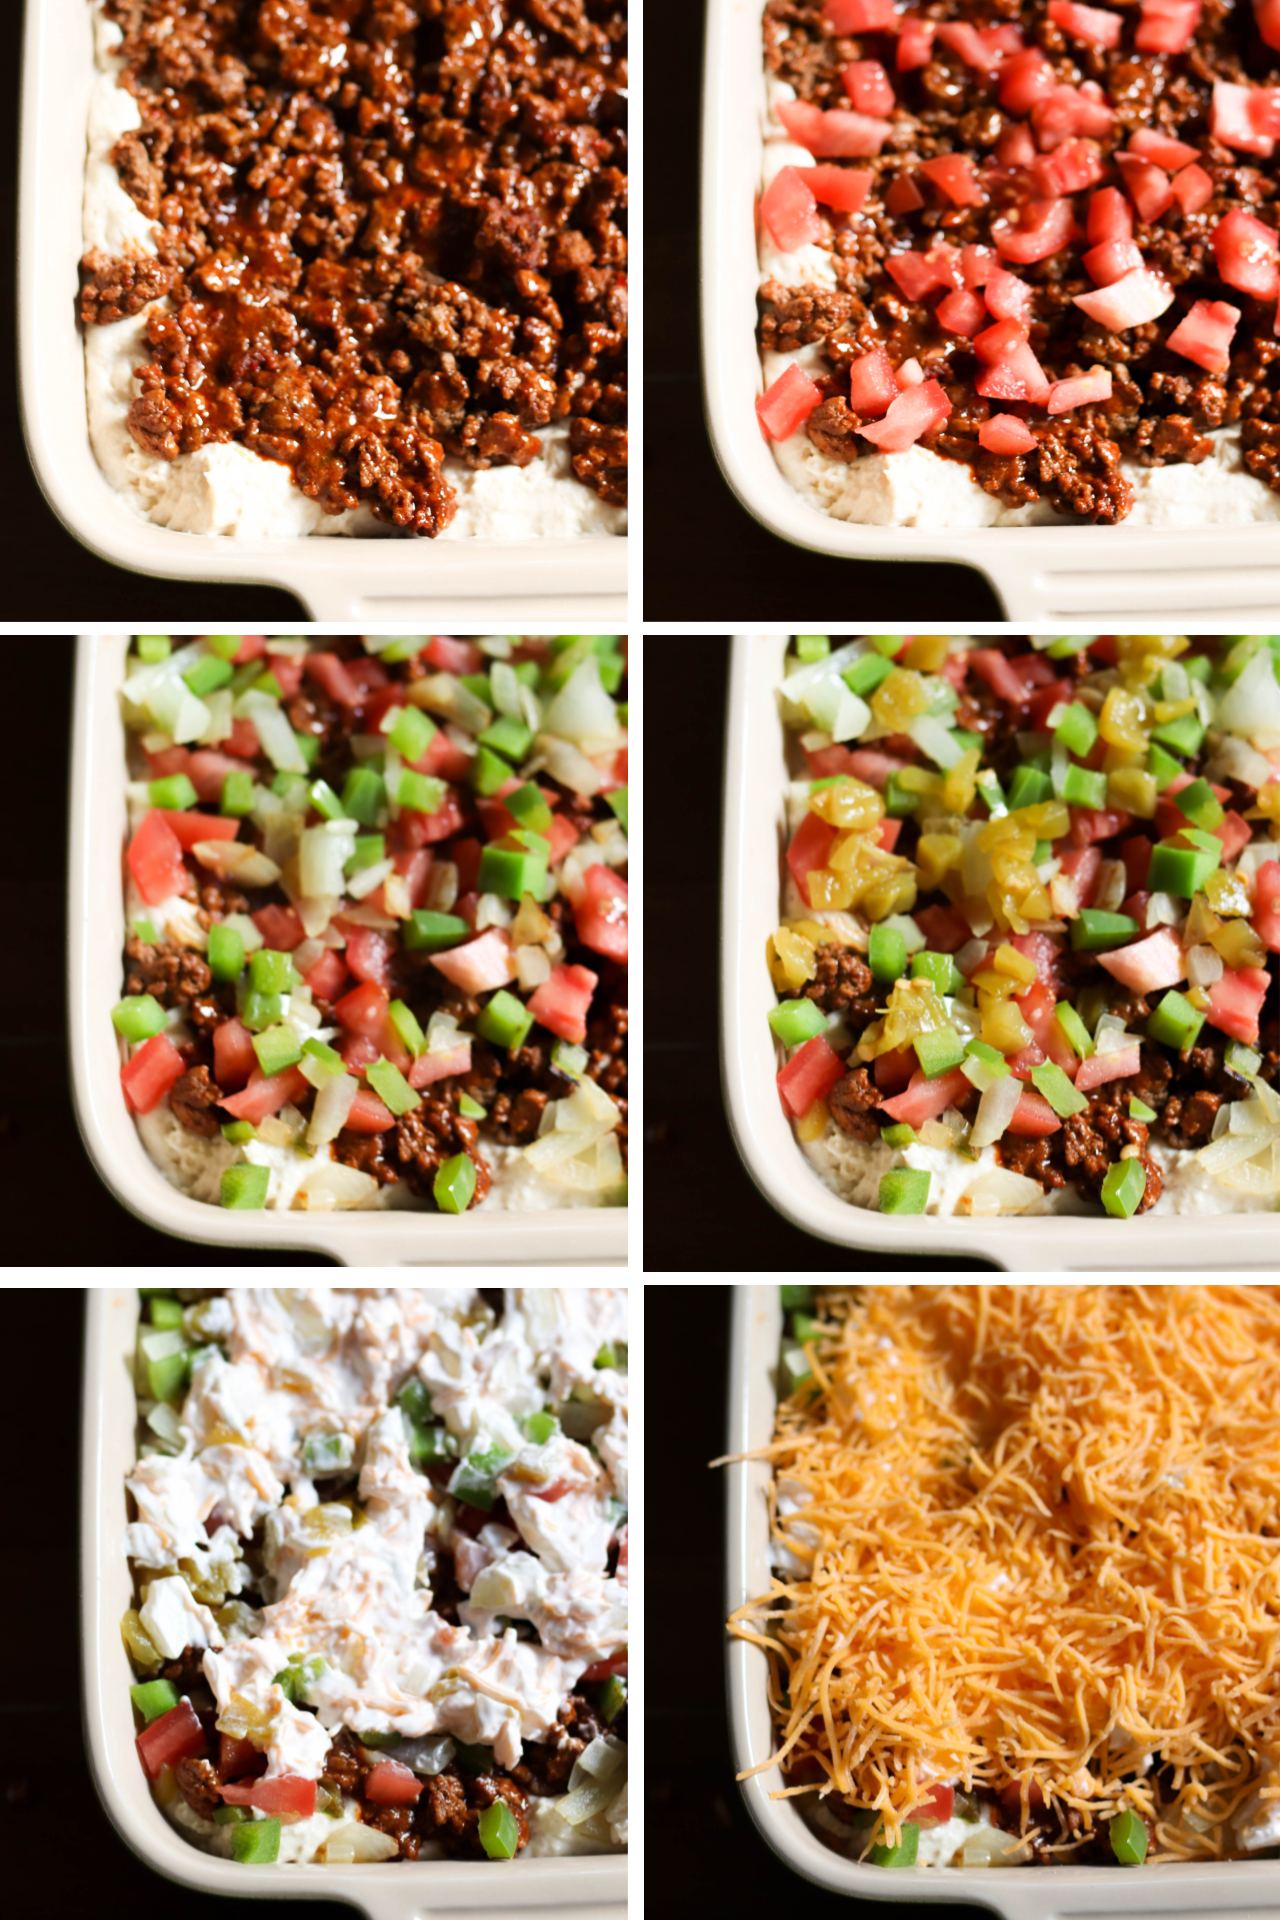 Layering stages for the John Wayne Casserole in a white casserole dish